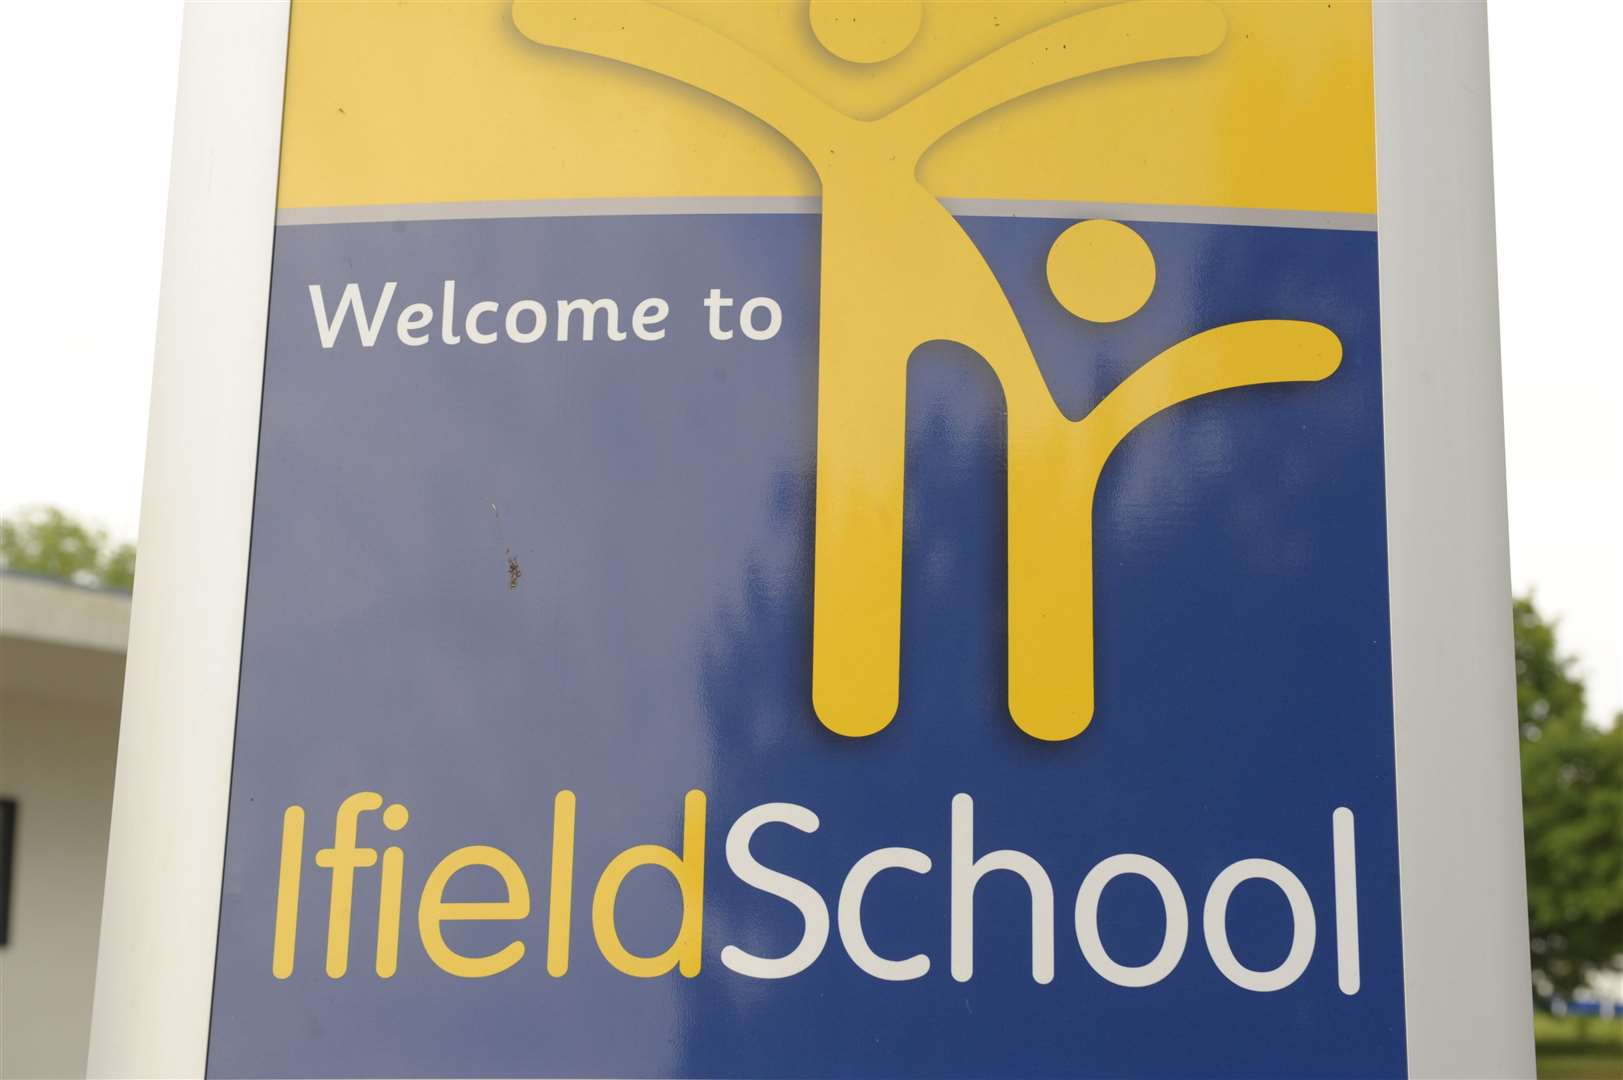 Ifield School, in Cedar Avenue, Gravesend has had two confirmed cases of coronavirus